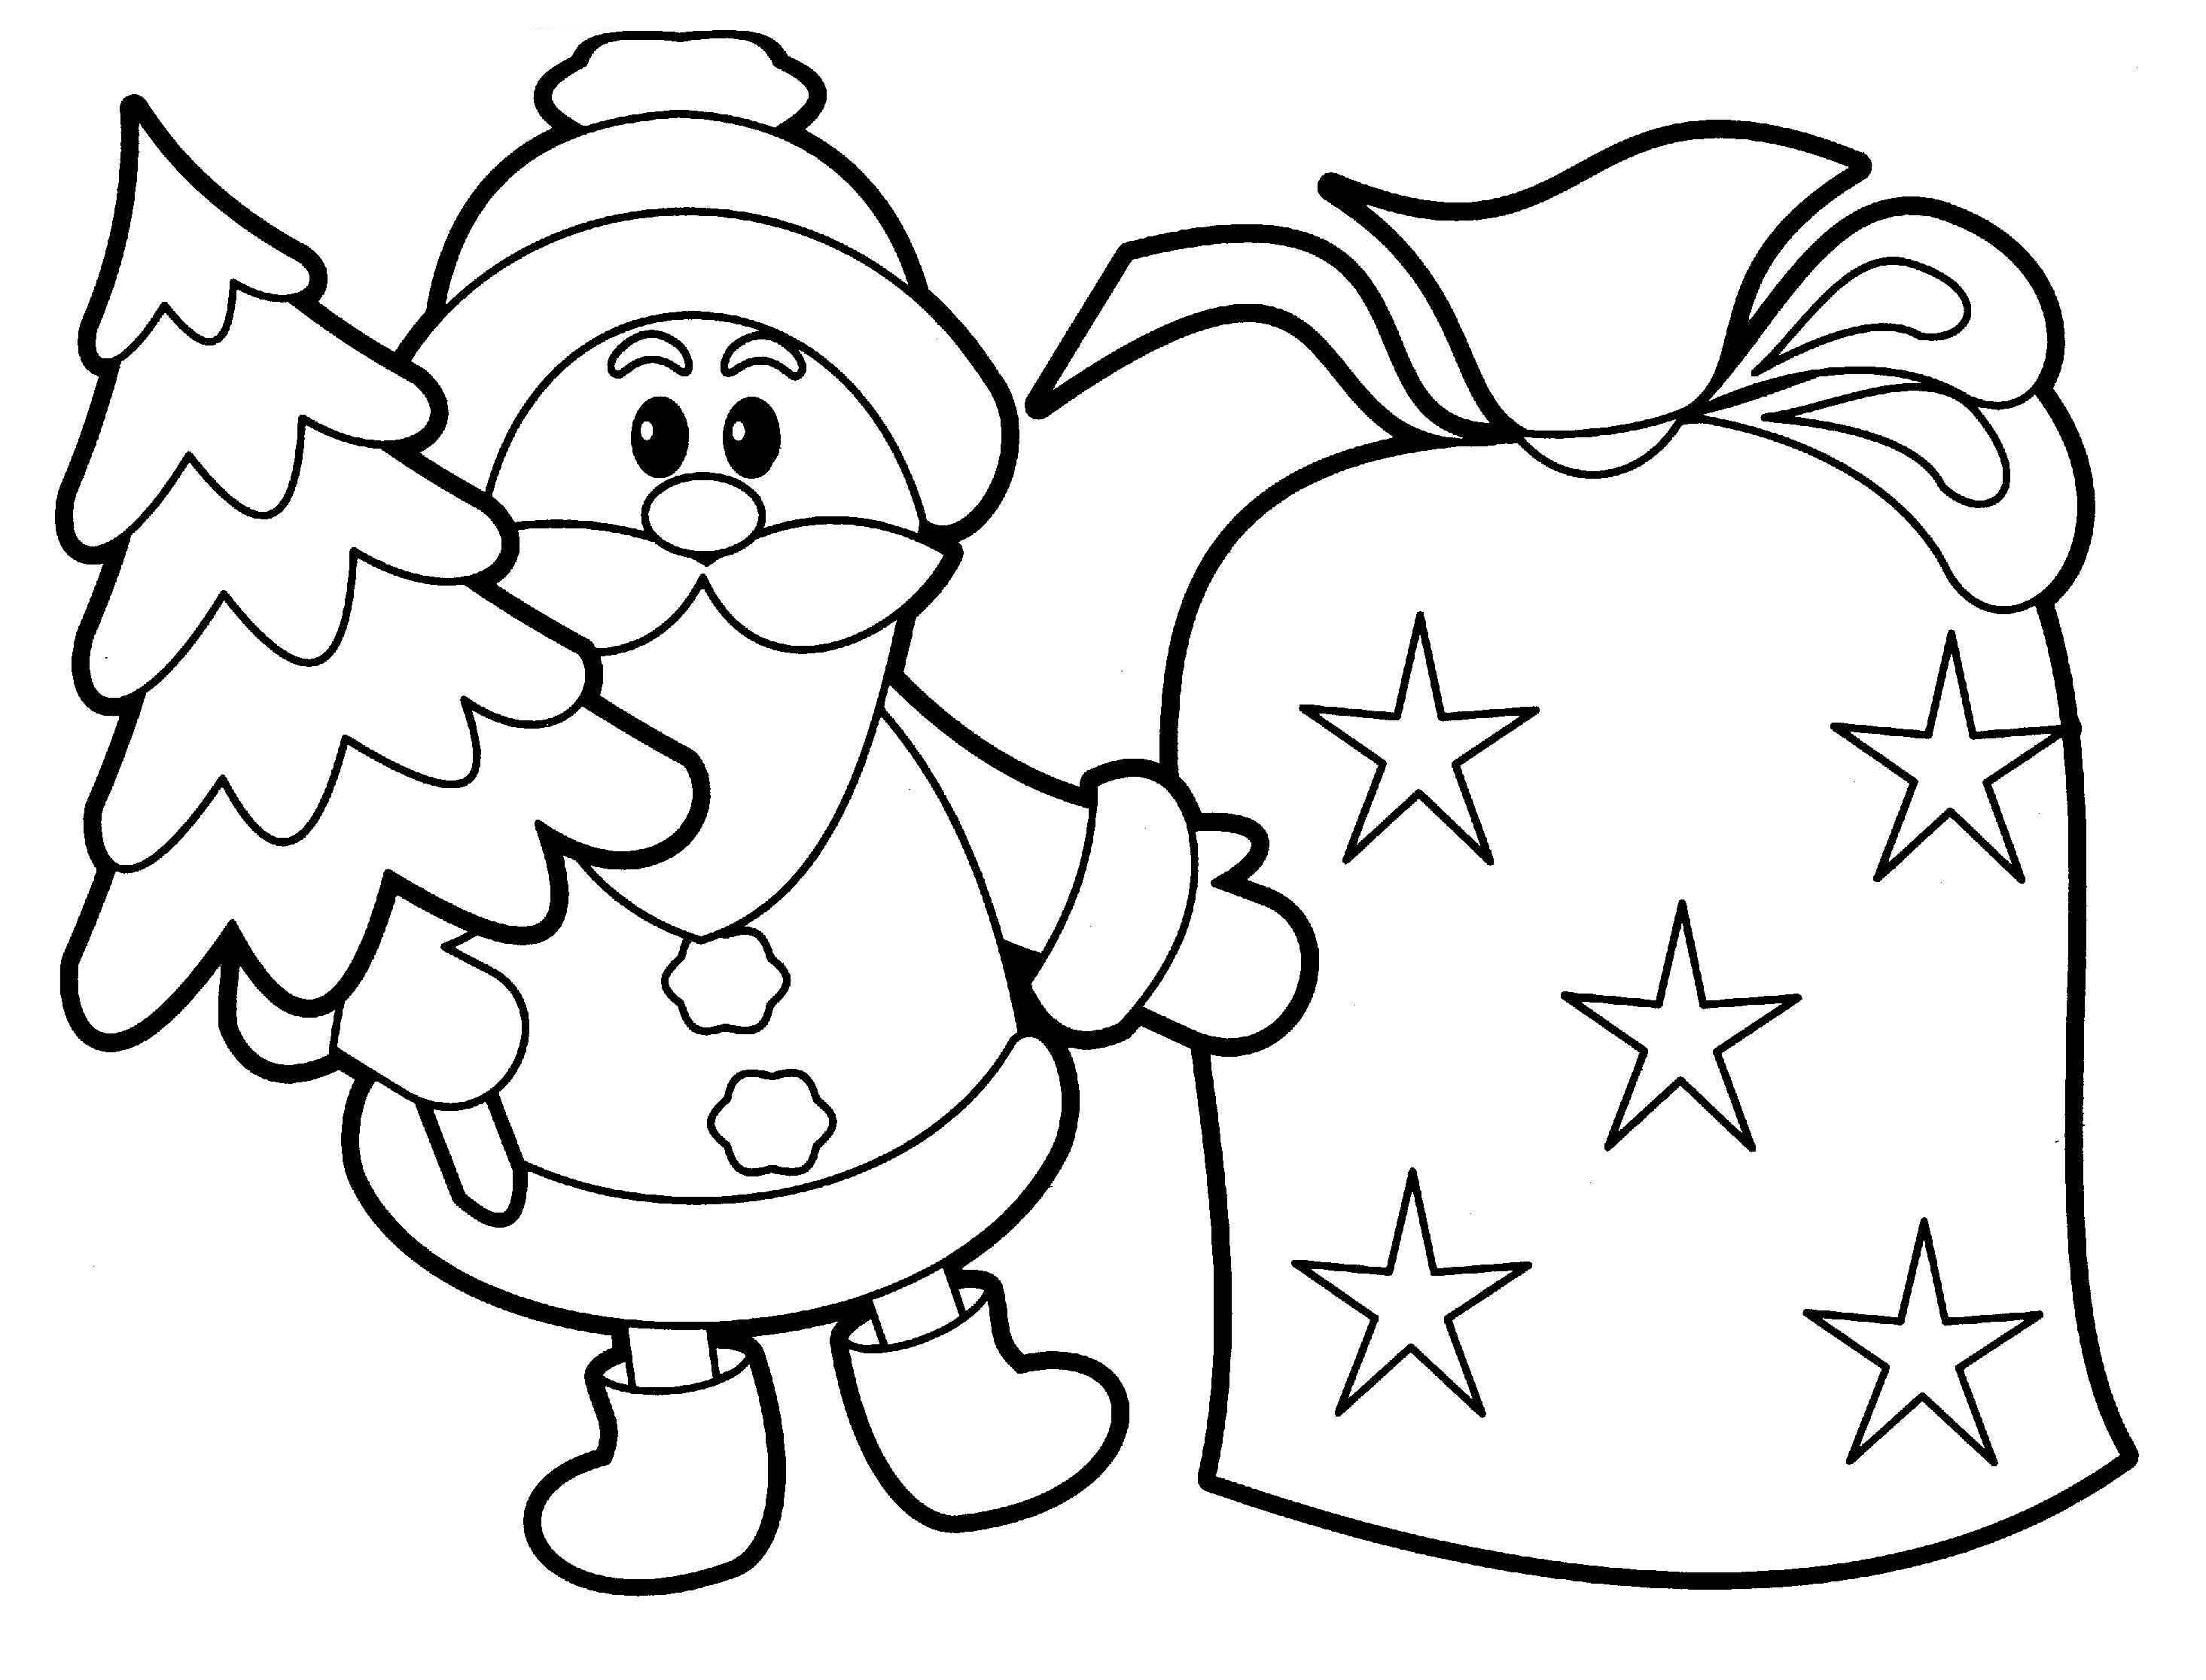 colour in father christmas father christmas colouring page colouring pages for kids christmas in father colour